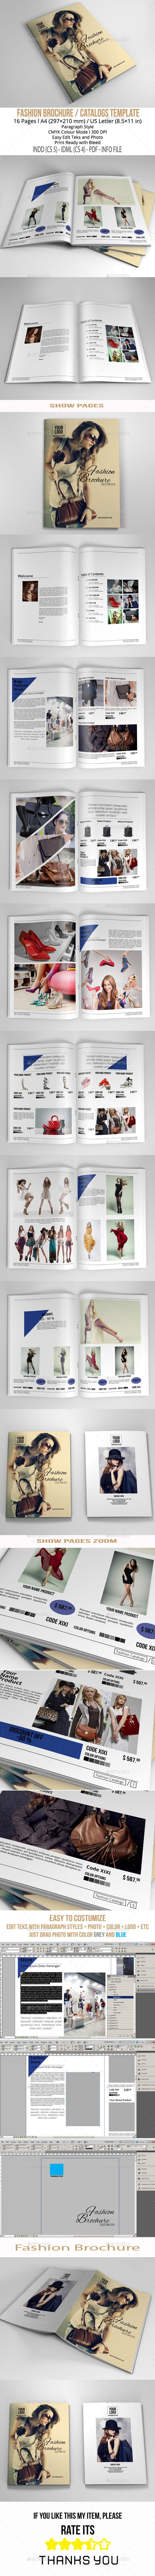 Fashion Brochure A4/US Letter